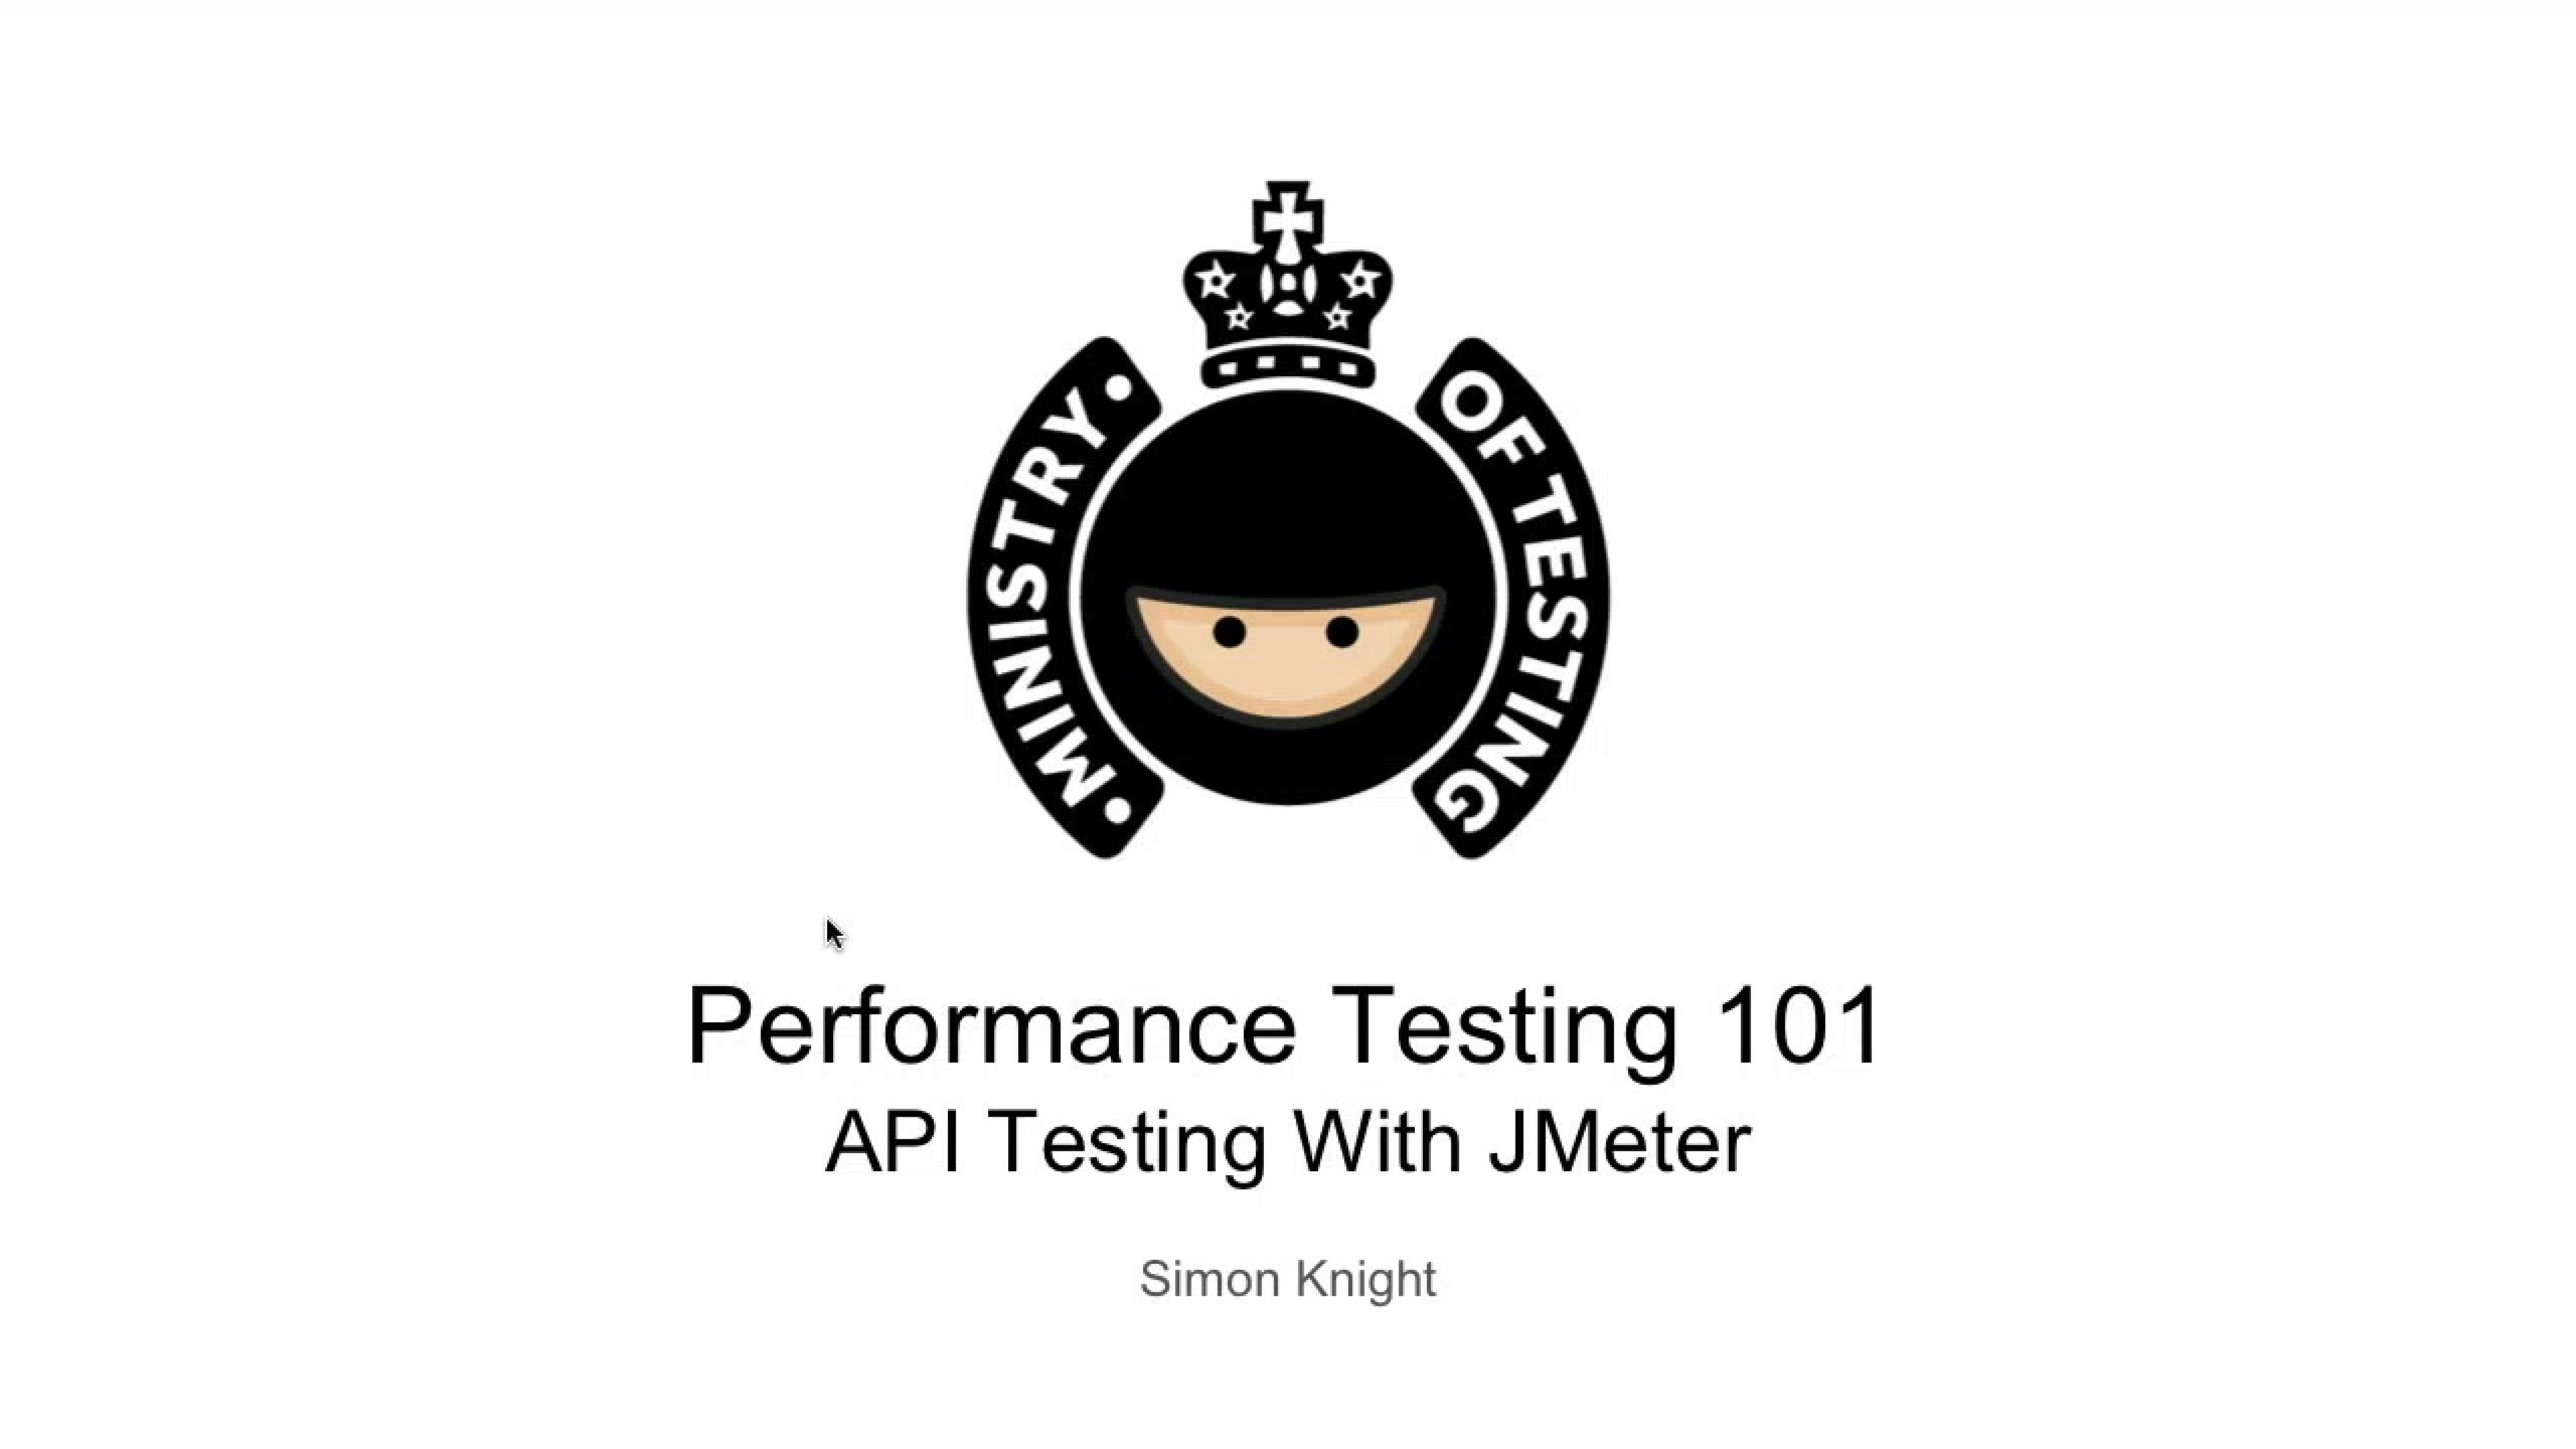 API Testing With JMeter